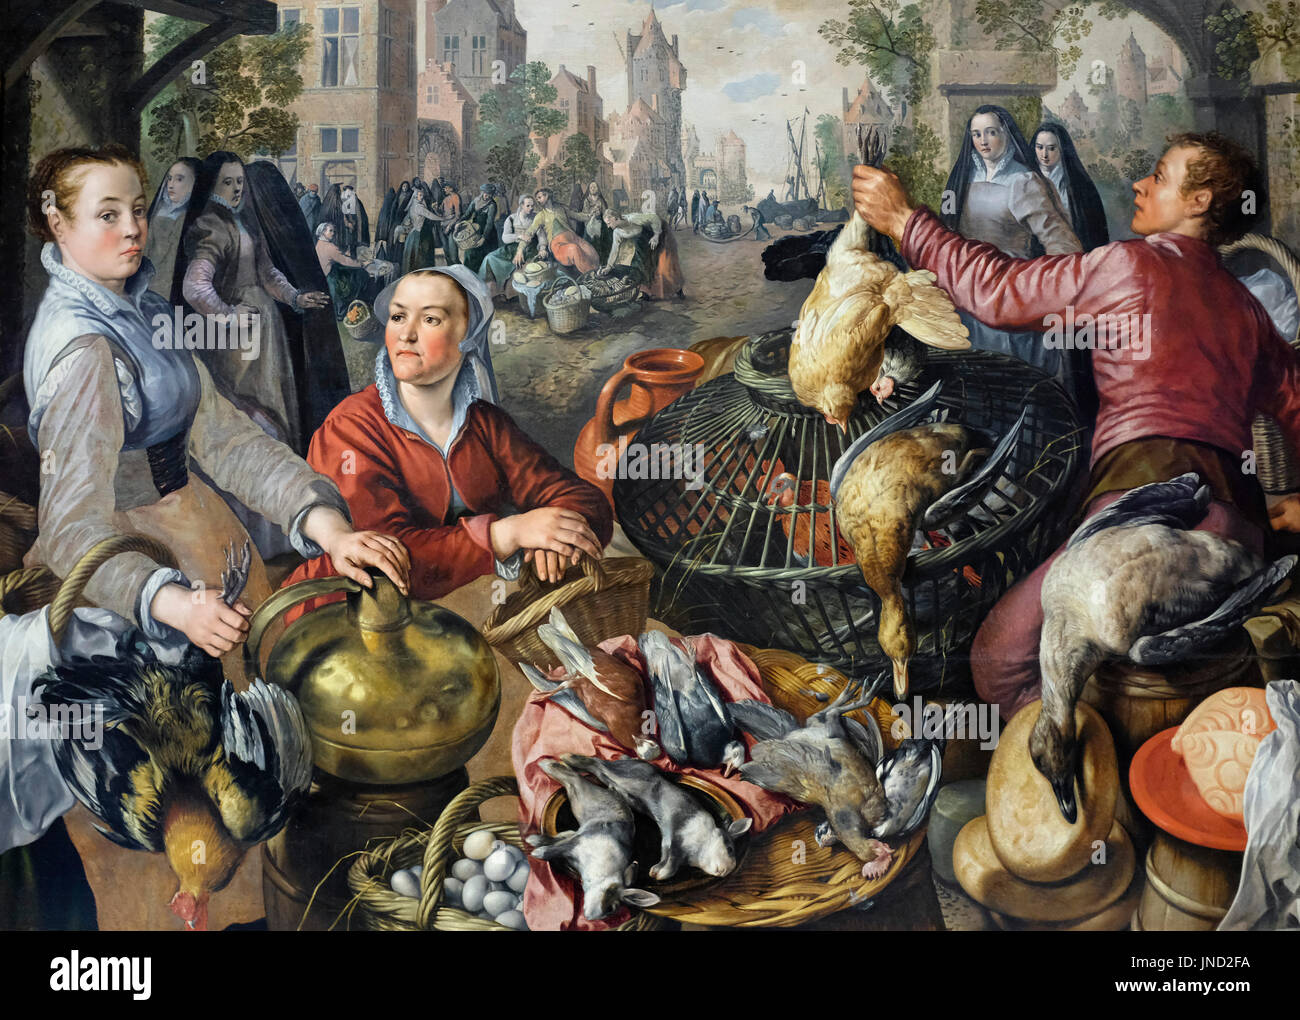 The Four Elements: Air, 1569 A Poultry Market -  Joachim Beuckelaer - Stock Image